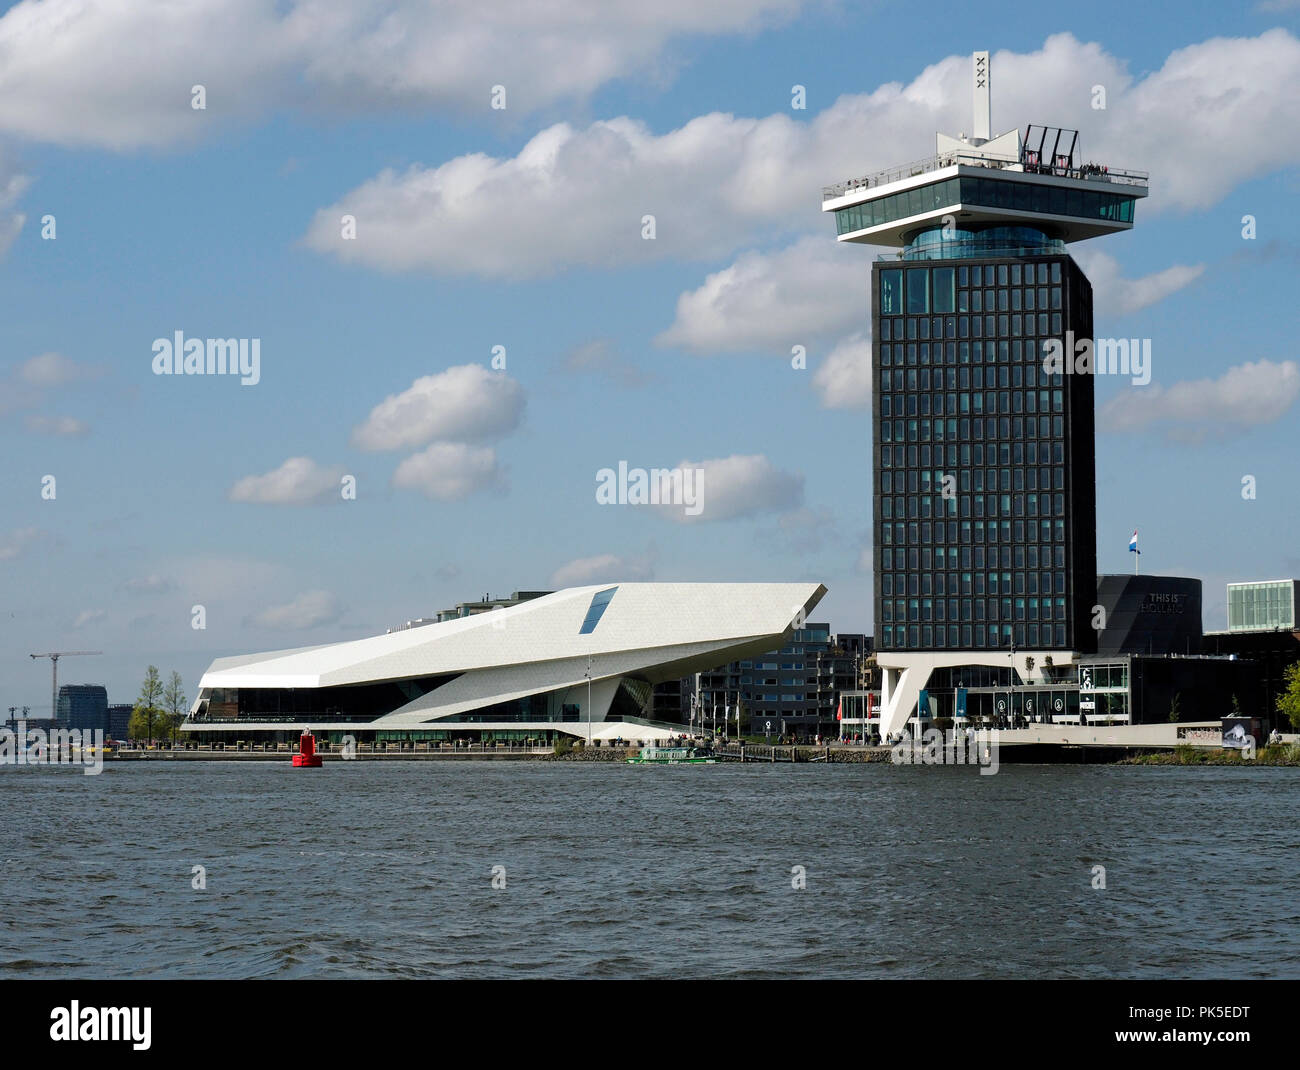 EYE Film Institute Netherlands, a Dutch archive and museum in Amsterdam is housed in this spectacular modern building. Port control tower is next door. Stock Photo